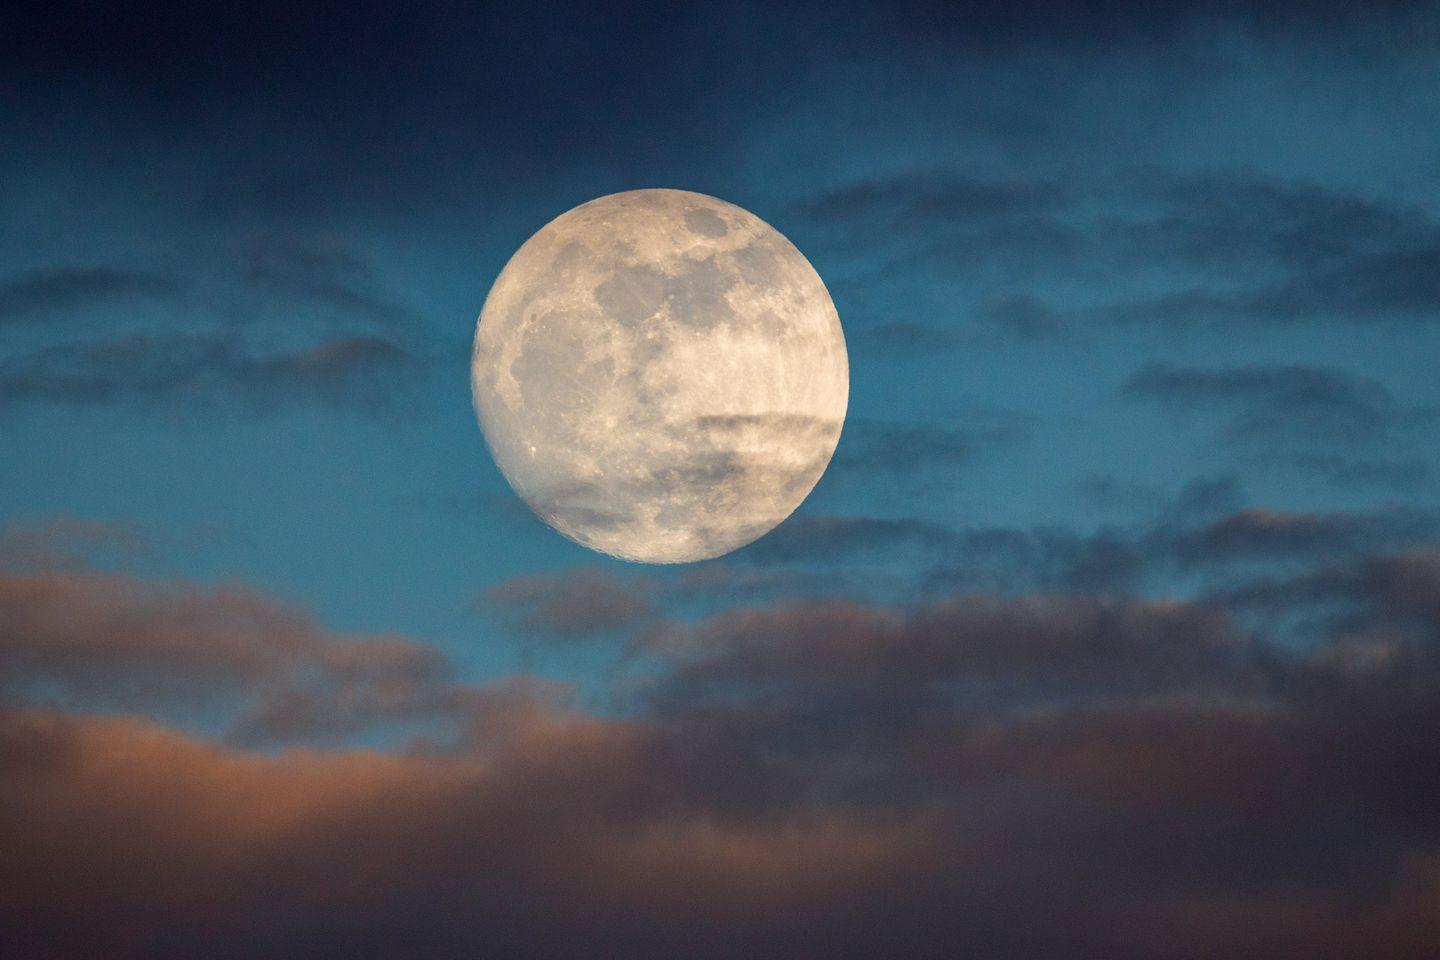 "<p>A full moon that occurs on the moon's closest approach to Earth is called a <a href=""https://www.popularmechanics.com/space/moon-mars/a23734/november-14-supermoon-largest-since-1948/"" rel=""nofollow noopener"" target=""_blank"" data-ylk=""slk:supermoon"" class=""link rapid-noclick-resp"">supermoon</a>. <br></p><p>On average, the moon is about 238,000 miles from Earth. The moon's perigee, or closest point to Earth along its orbit, occurs when it is approximately 225,622 miles from Earth. (The farthest point, when the moon is more than 252,088 miles from Earth, is called the apogee.) </p><p>During a supermoon, the moon can appear as much as 30 percent brighter and up to 15 percent larger. This may sound like a big deal, but these changes aren't always visible to the naked eye. </p>"